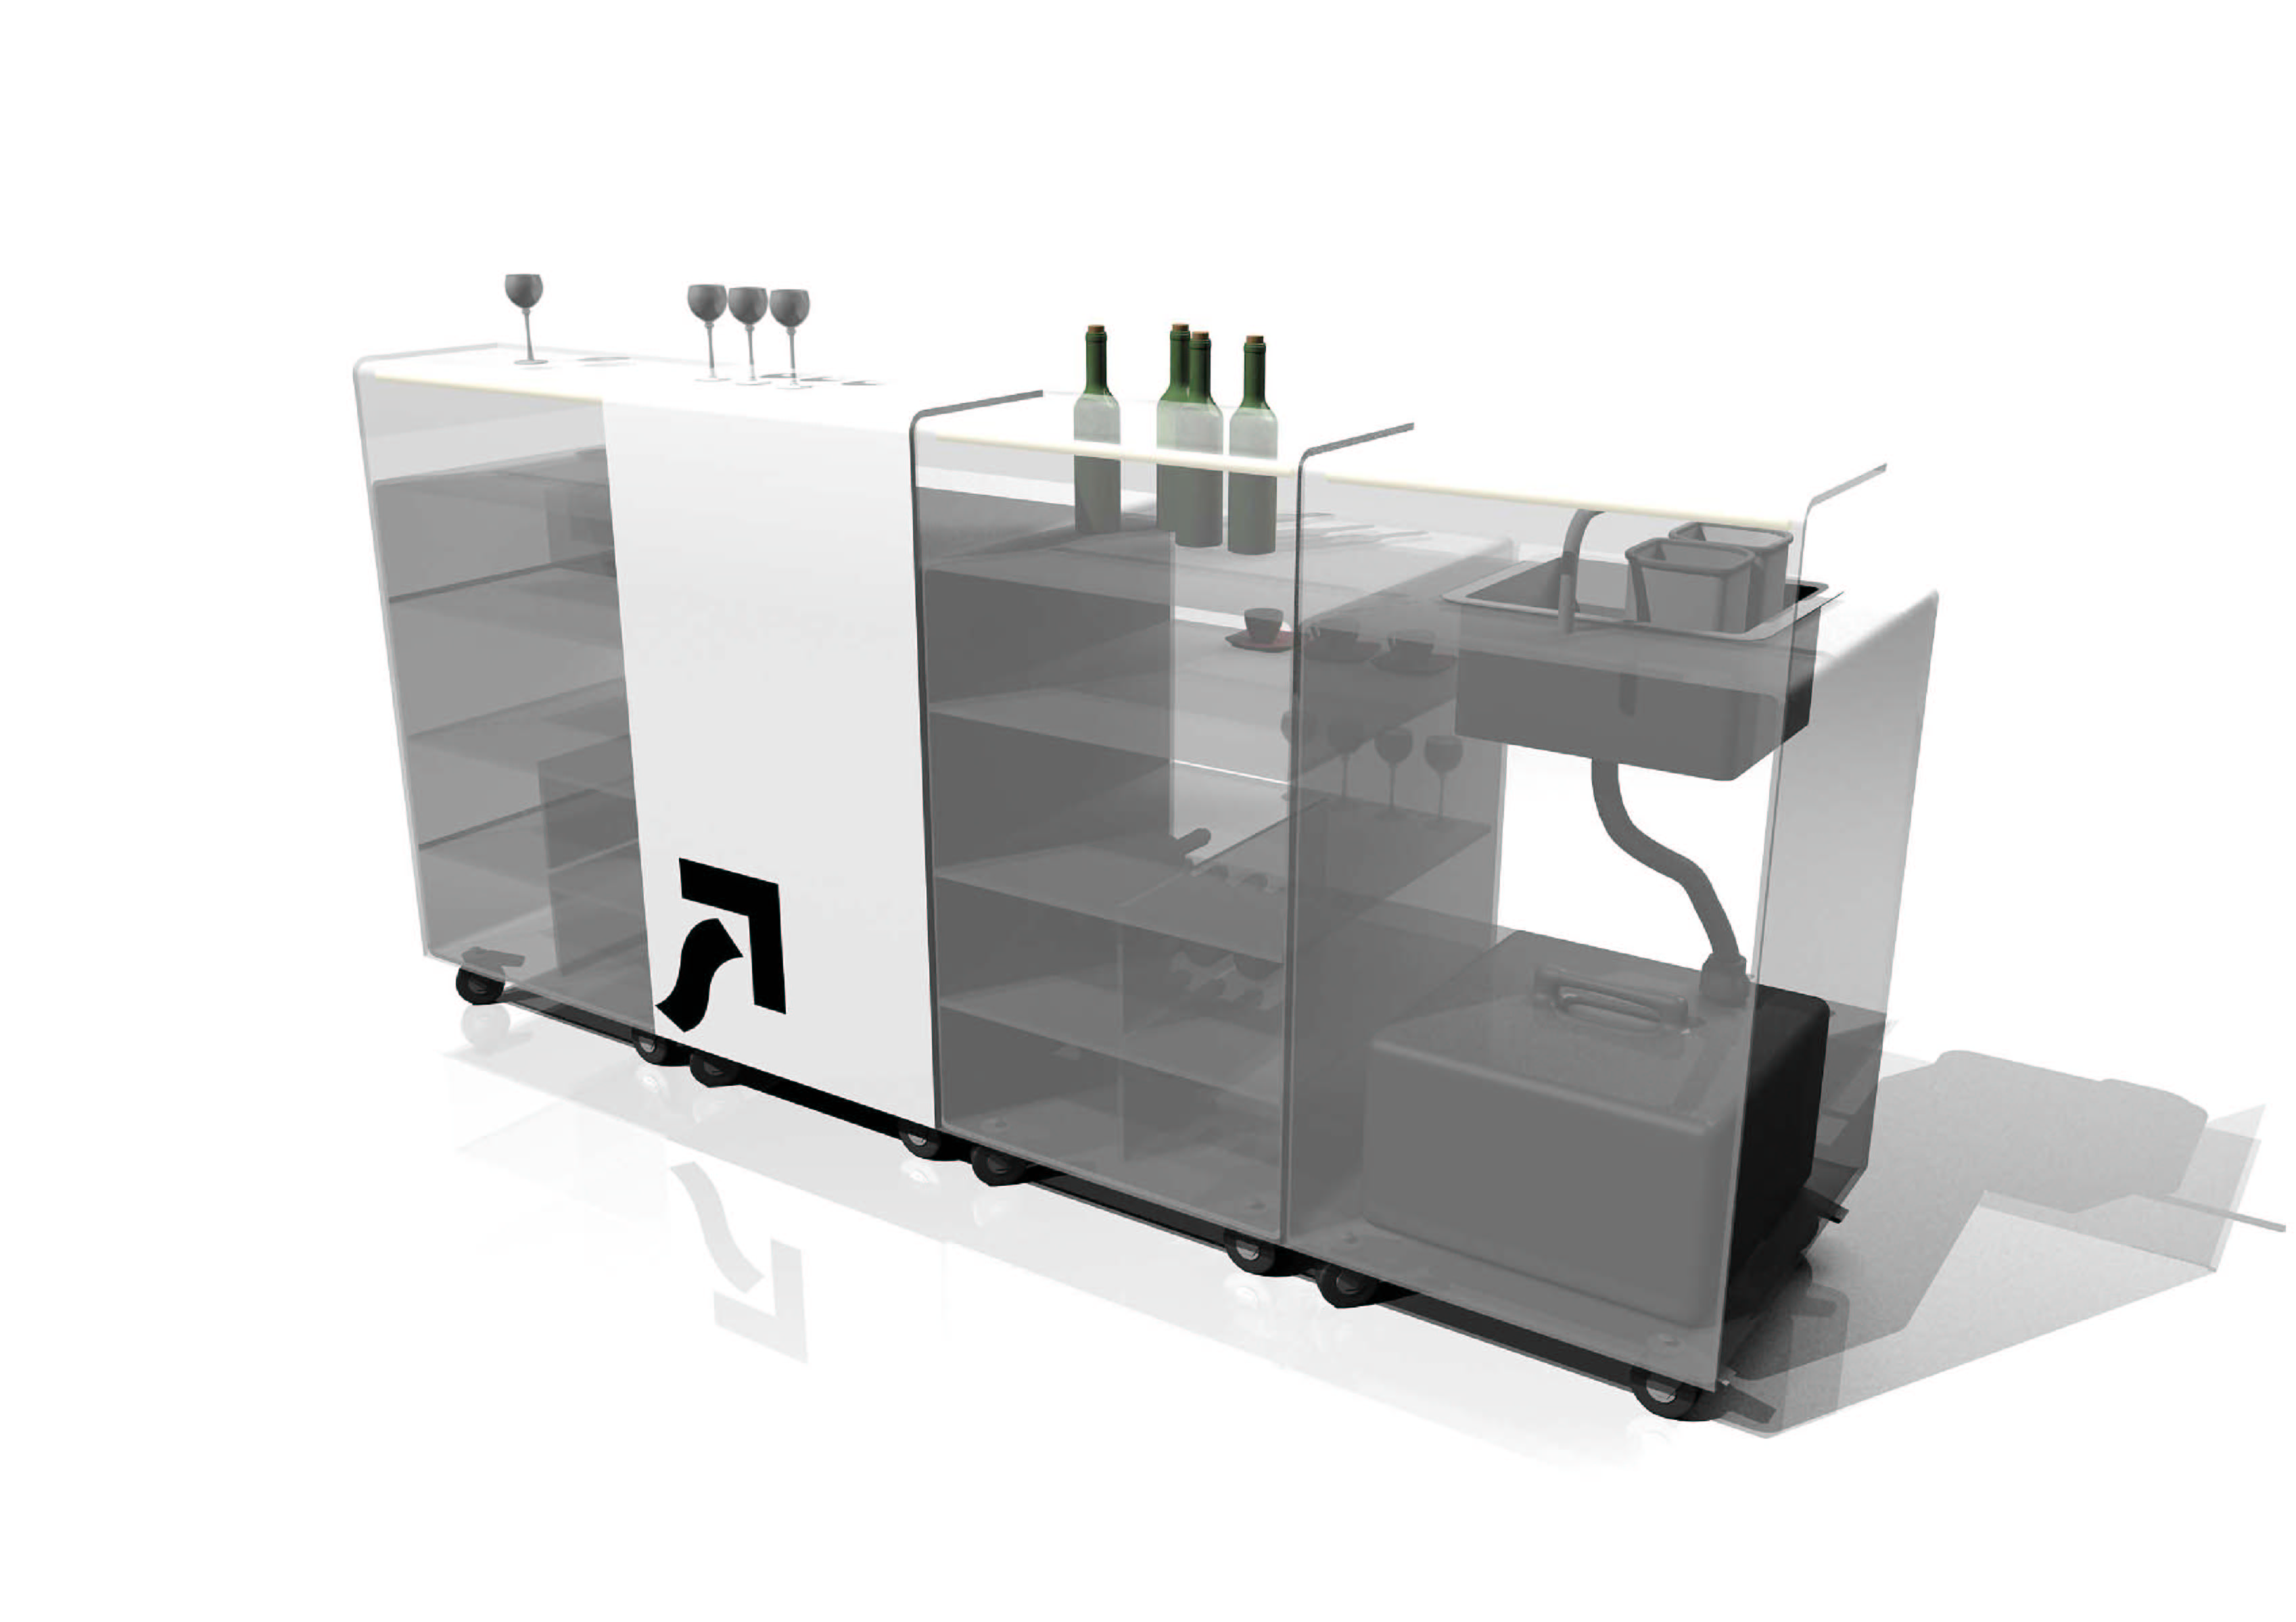 Portable bar designs for homes - Home decor ideas